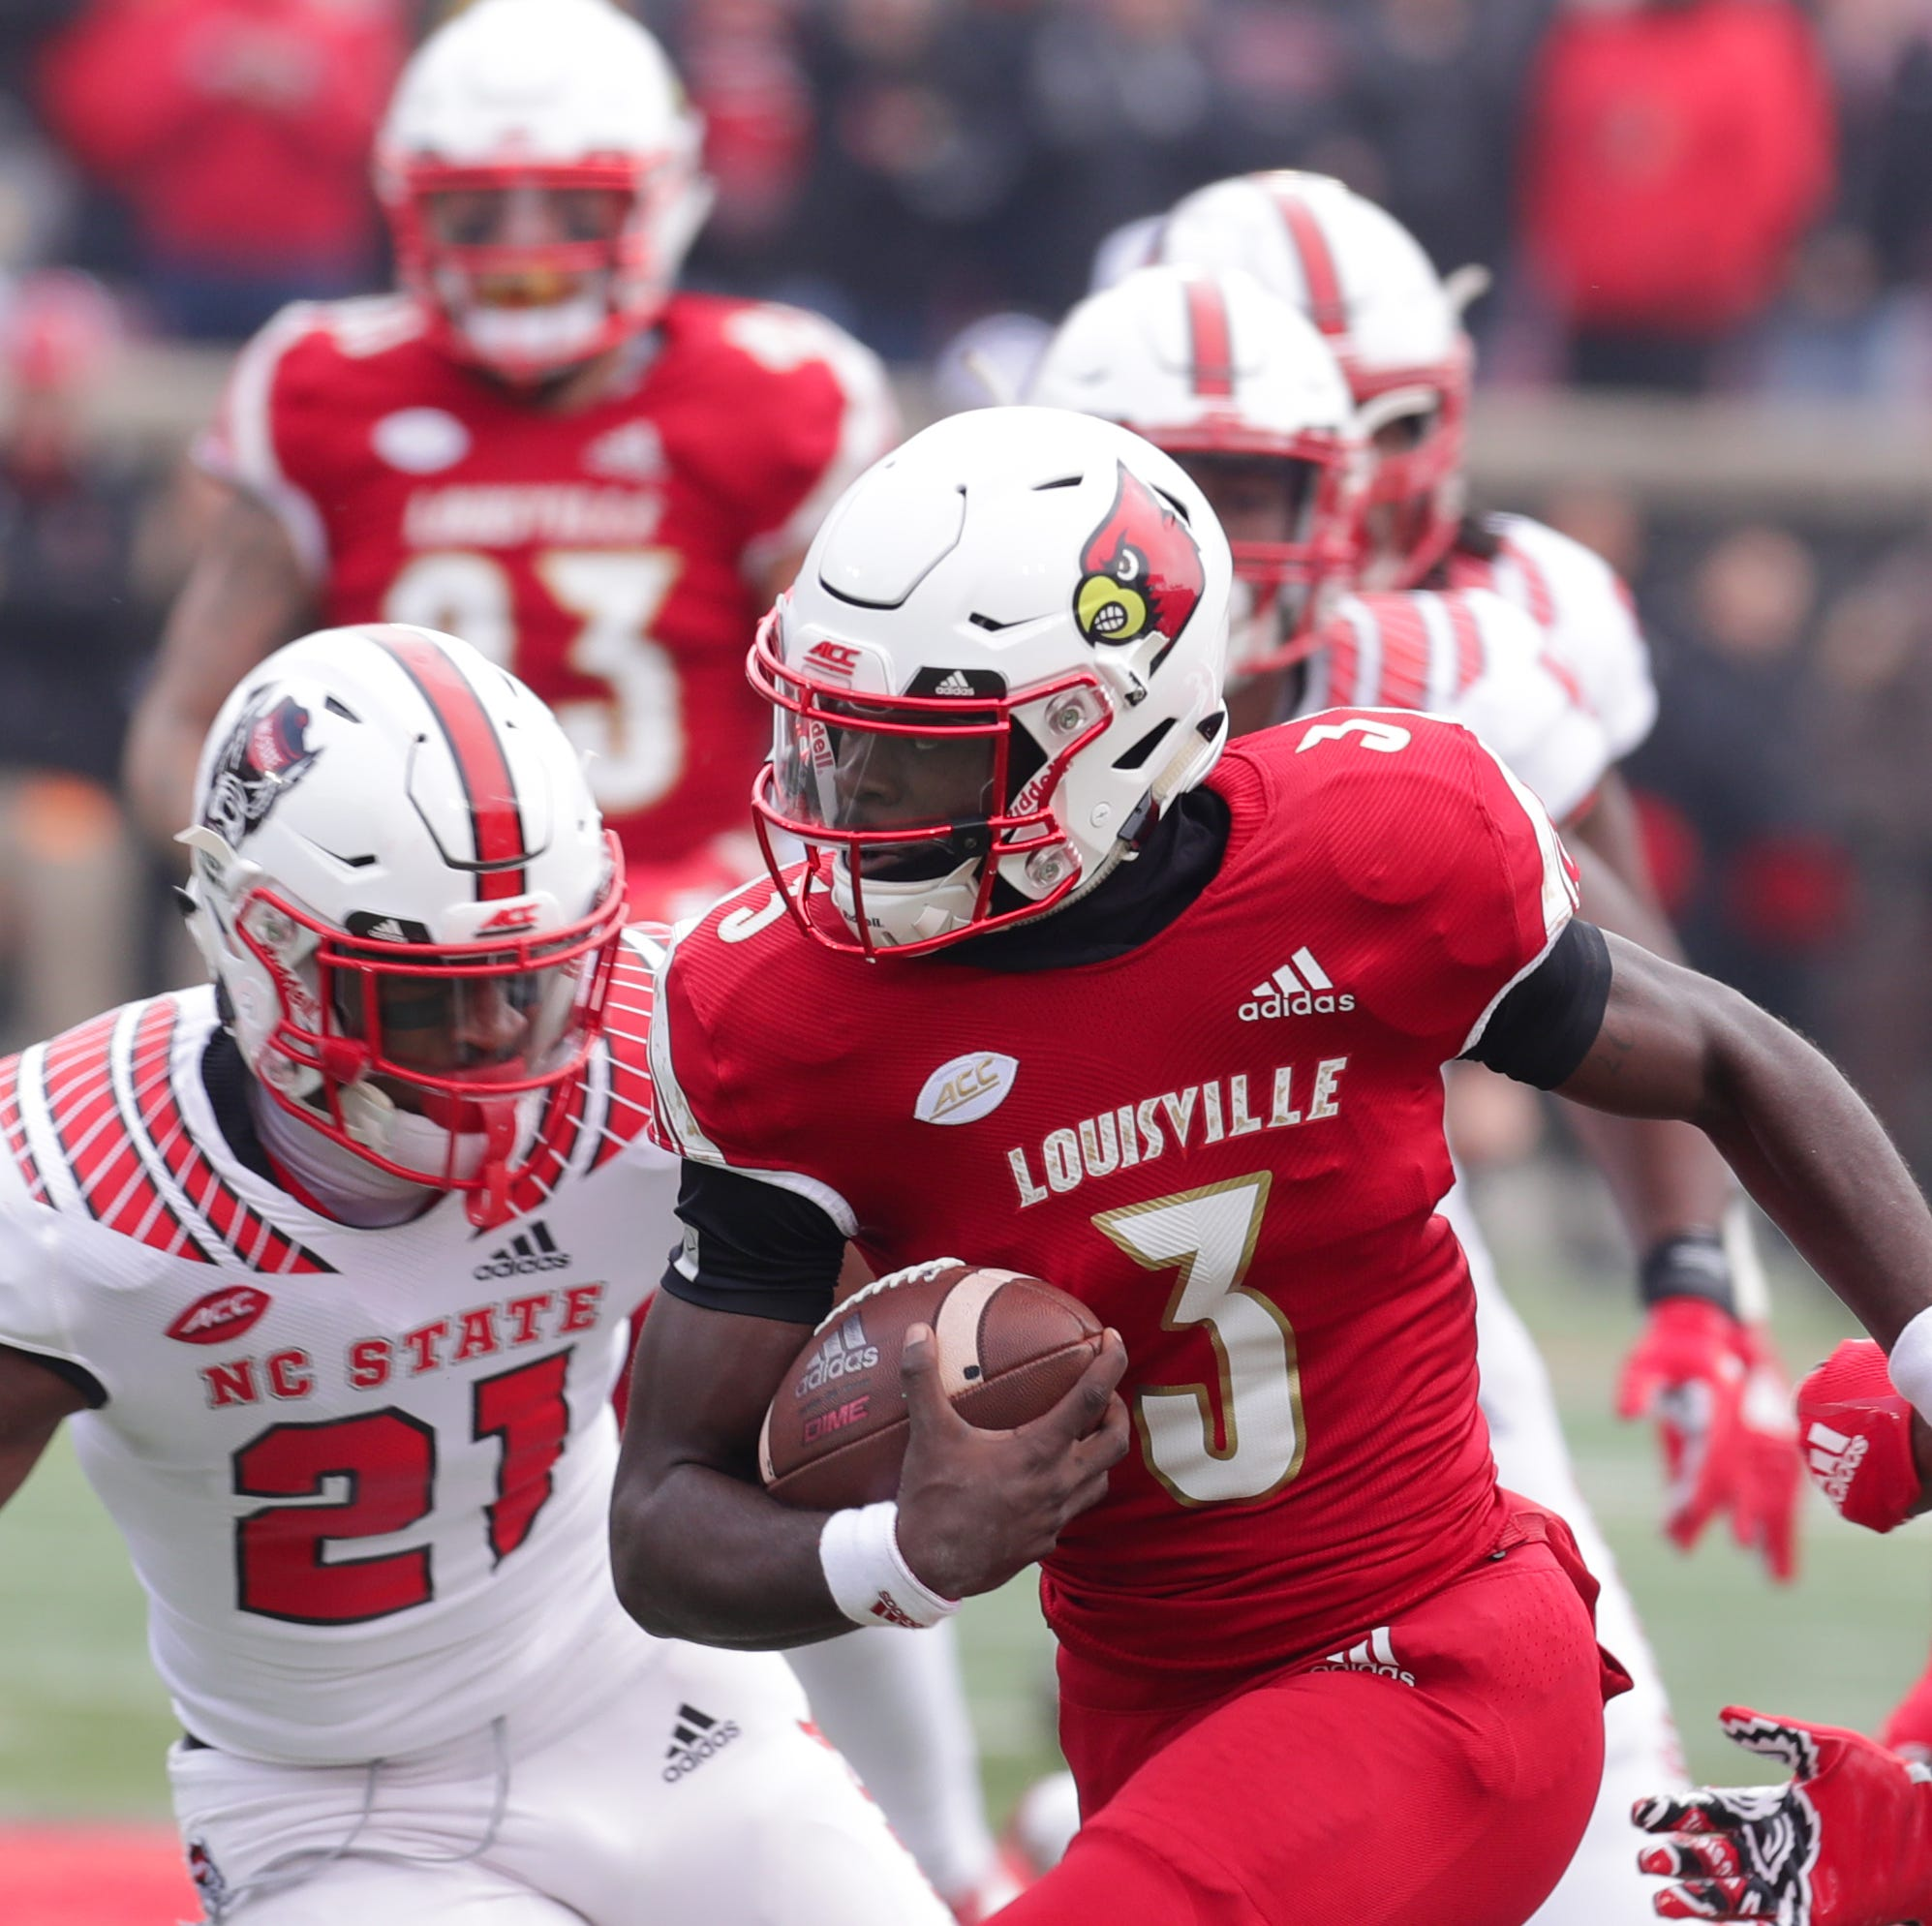 Louisville loses another rout, and all that's left is the Governor's Cup